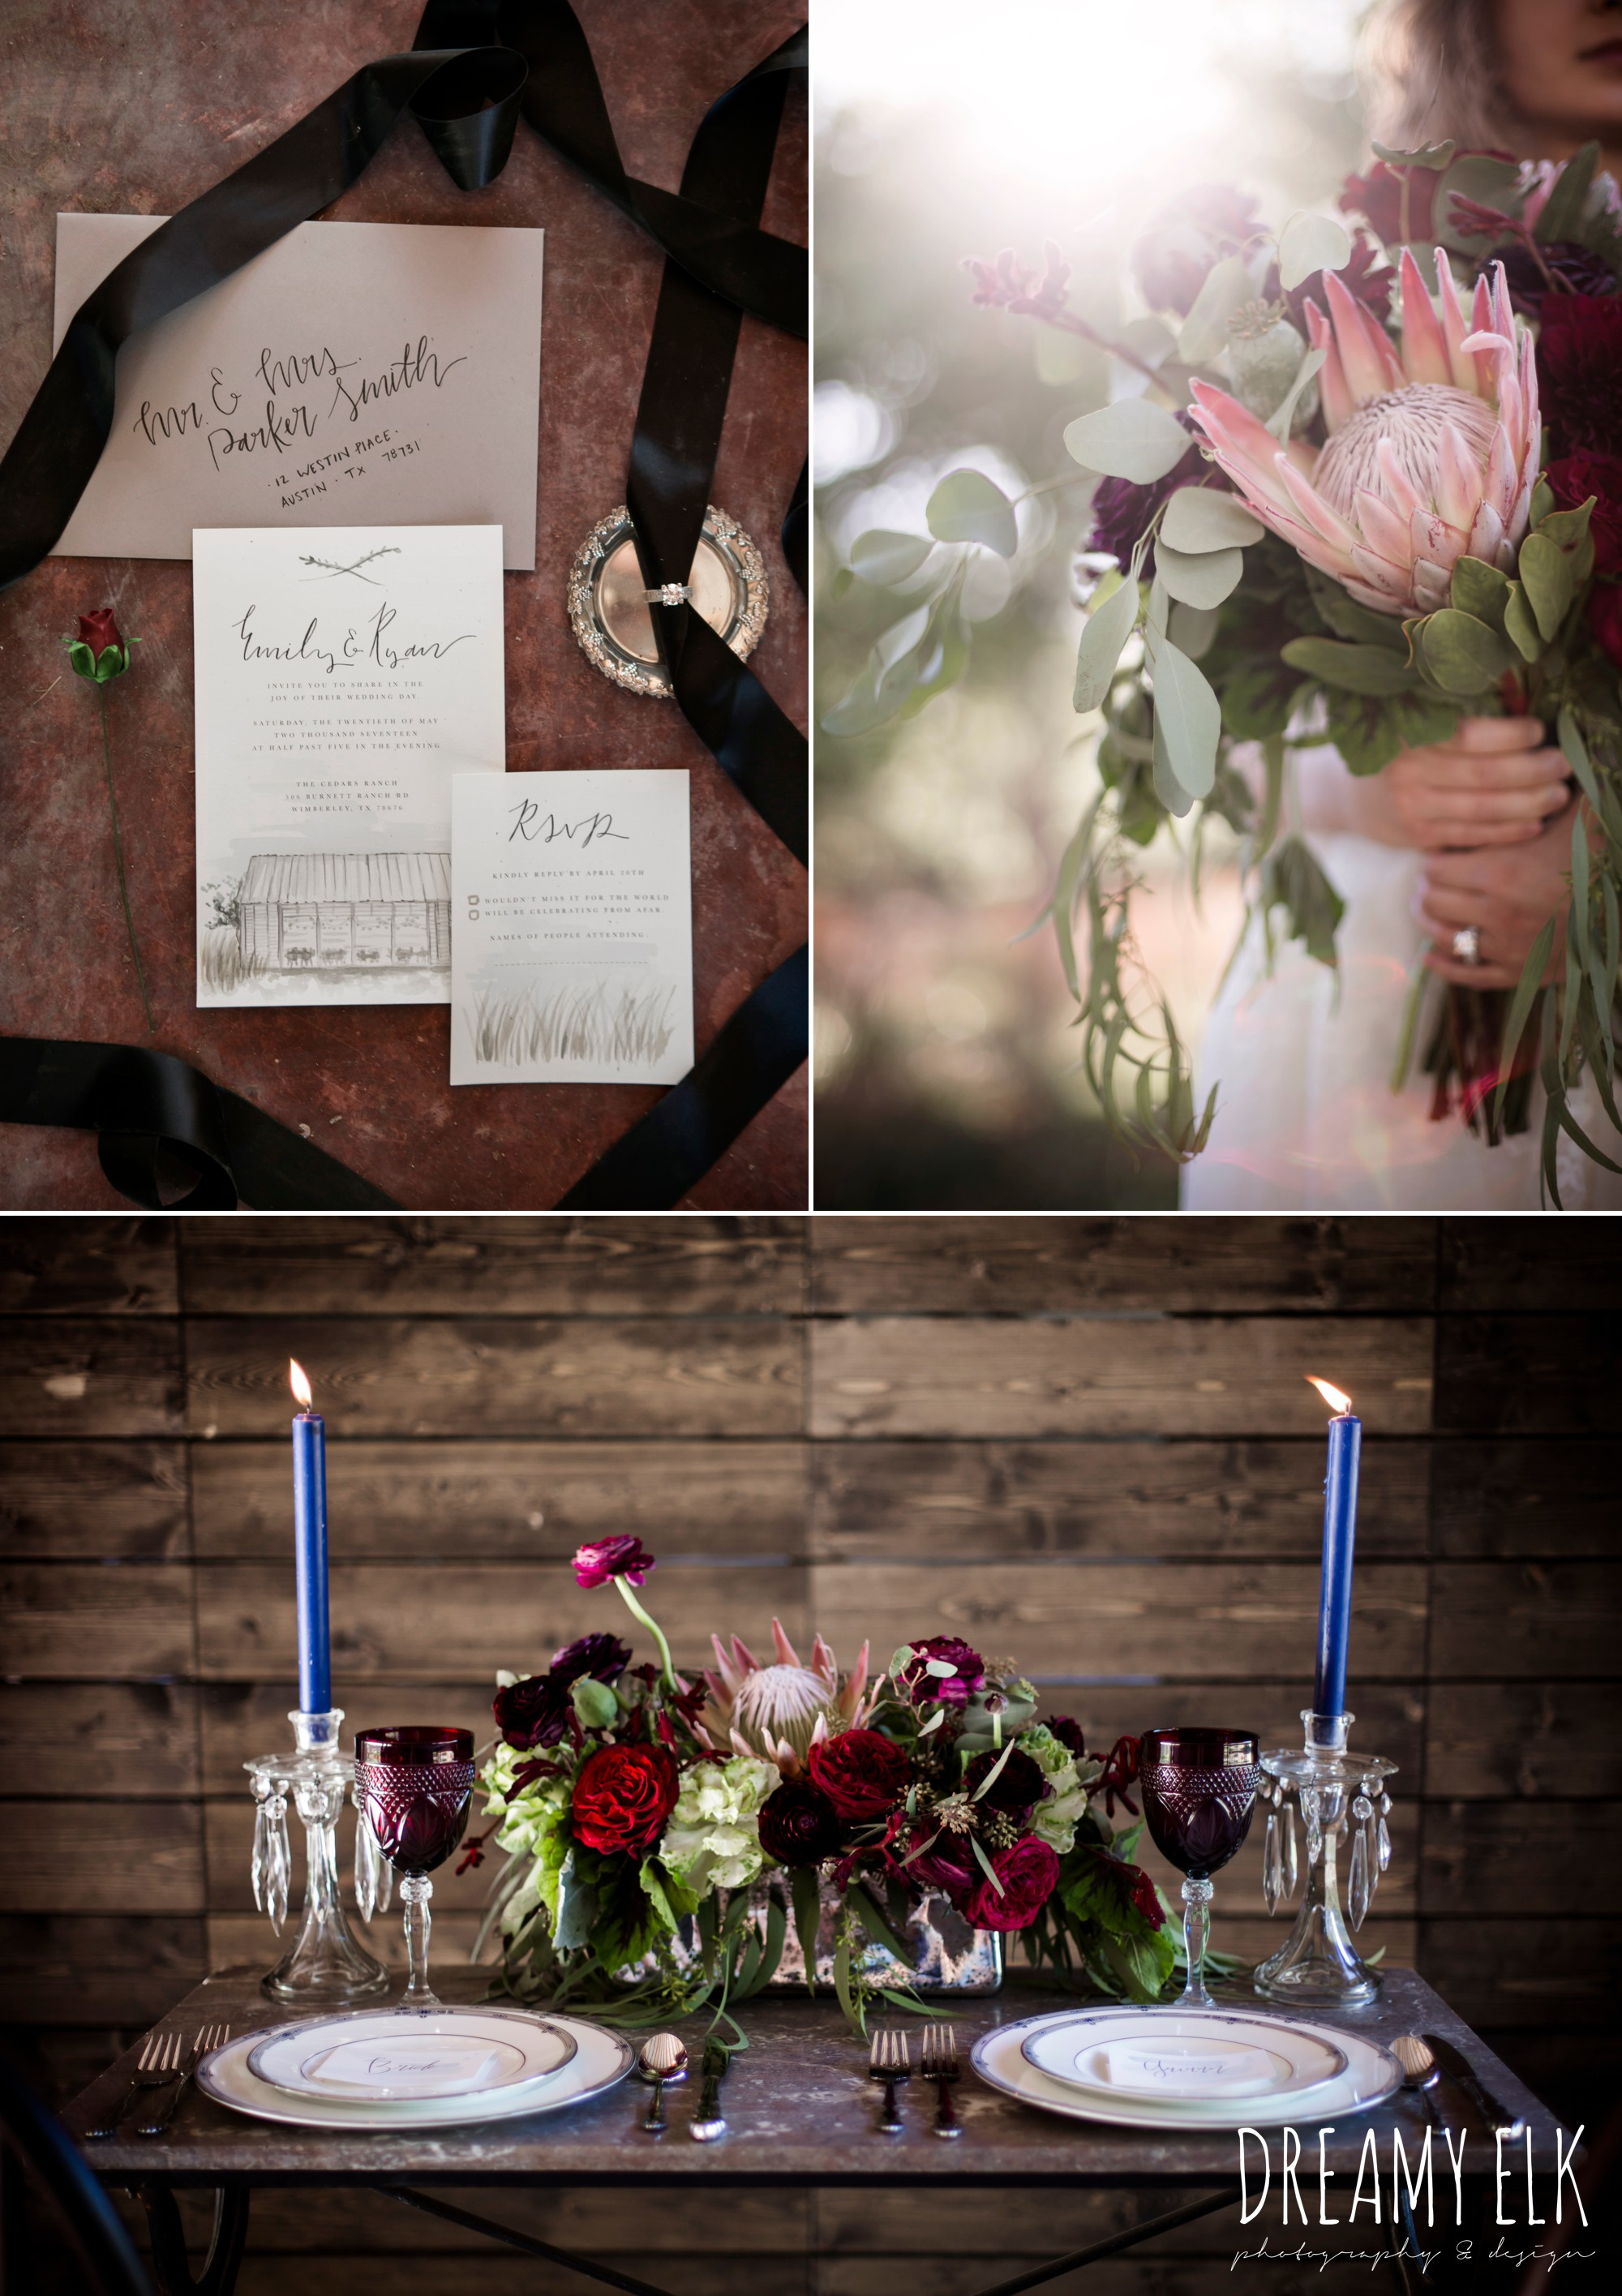 feel good find, marry me in spring, kirk root designs, the cedars ranch, libby cole creations, moody rich delicate marfa inspired burgundy maroon black white spring styled wedding photo shoot {dreamy elk photography and design}